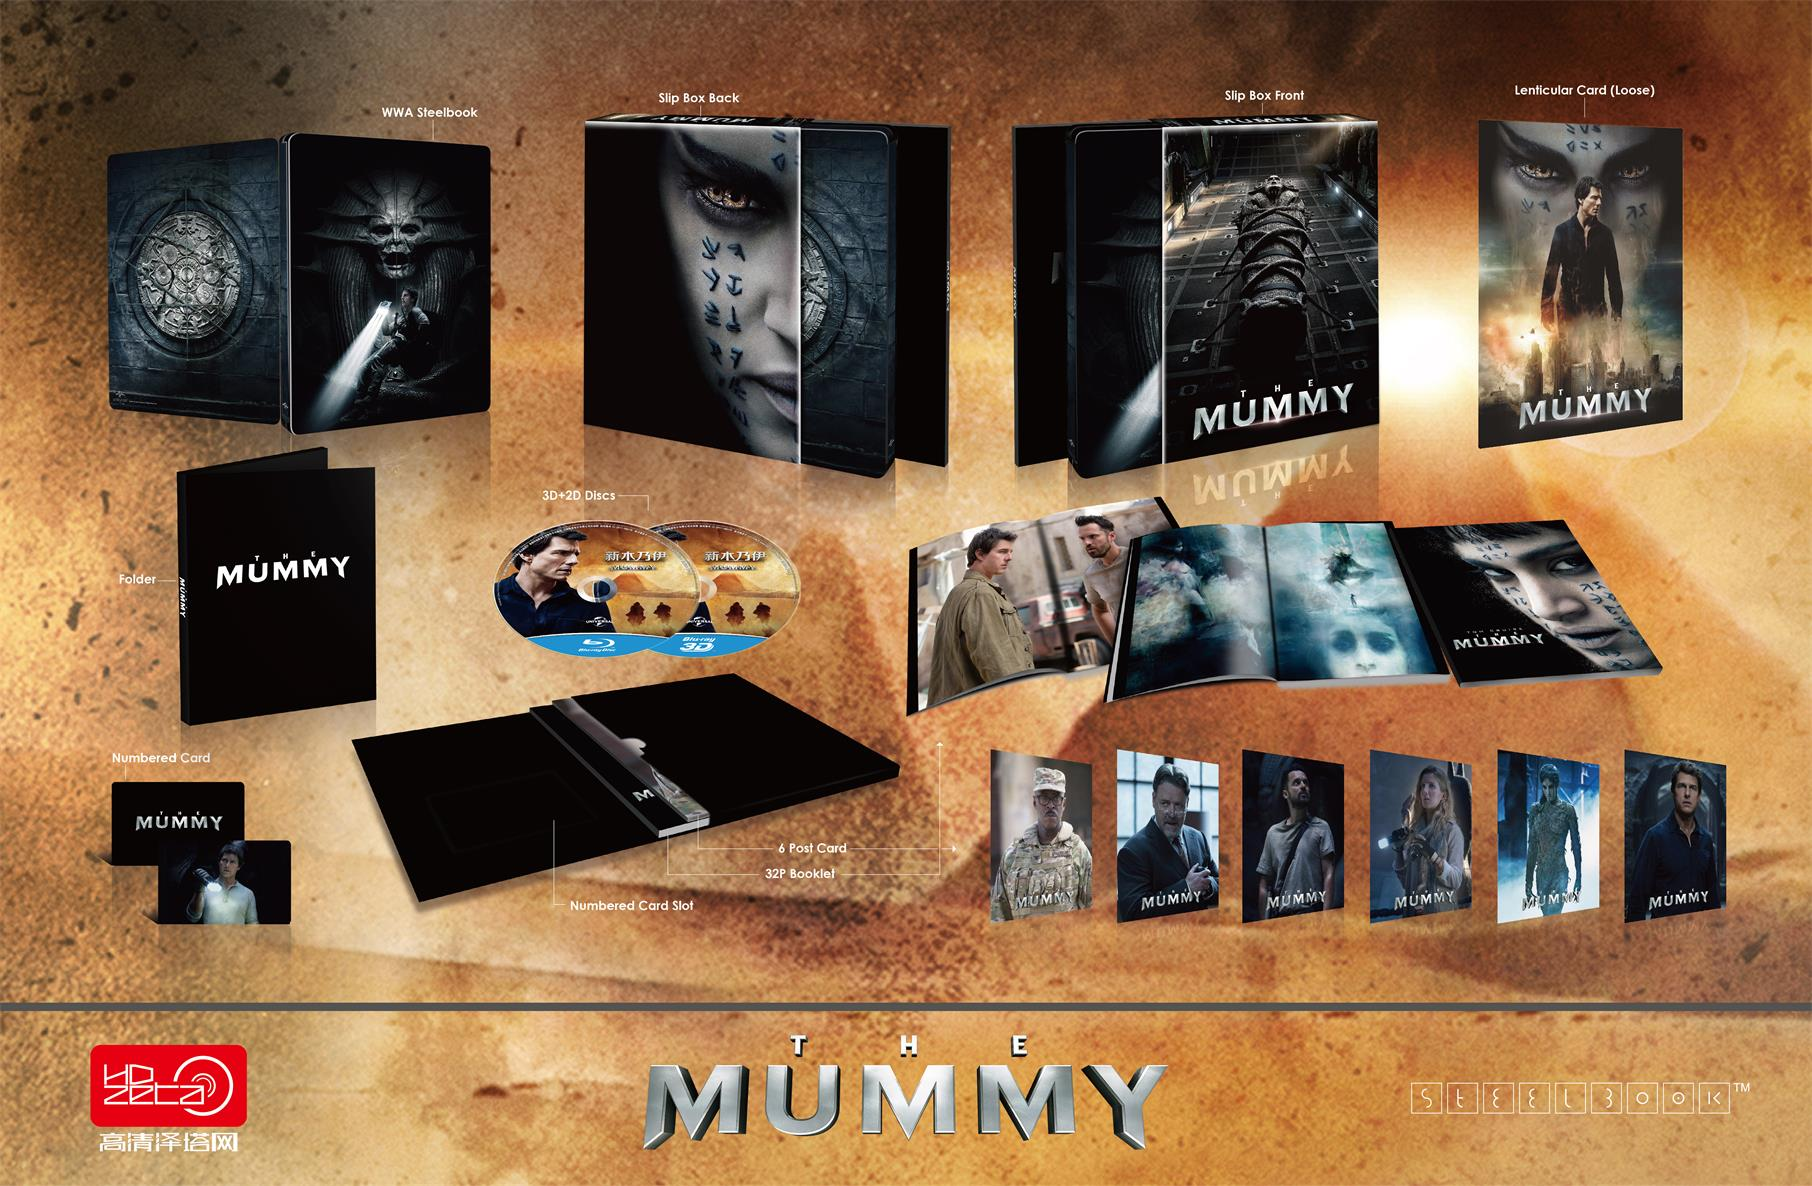 The Mummy HDzeta Silver Label Special Edition